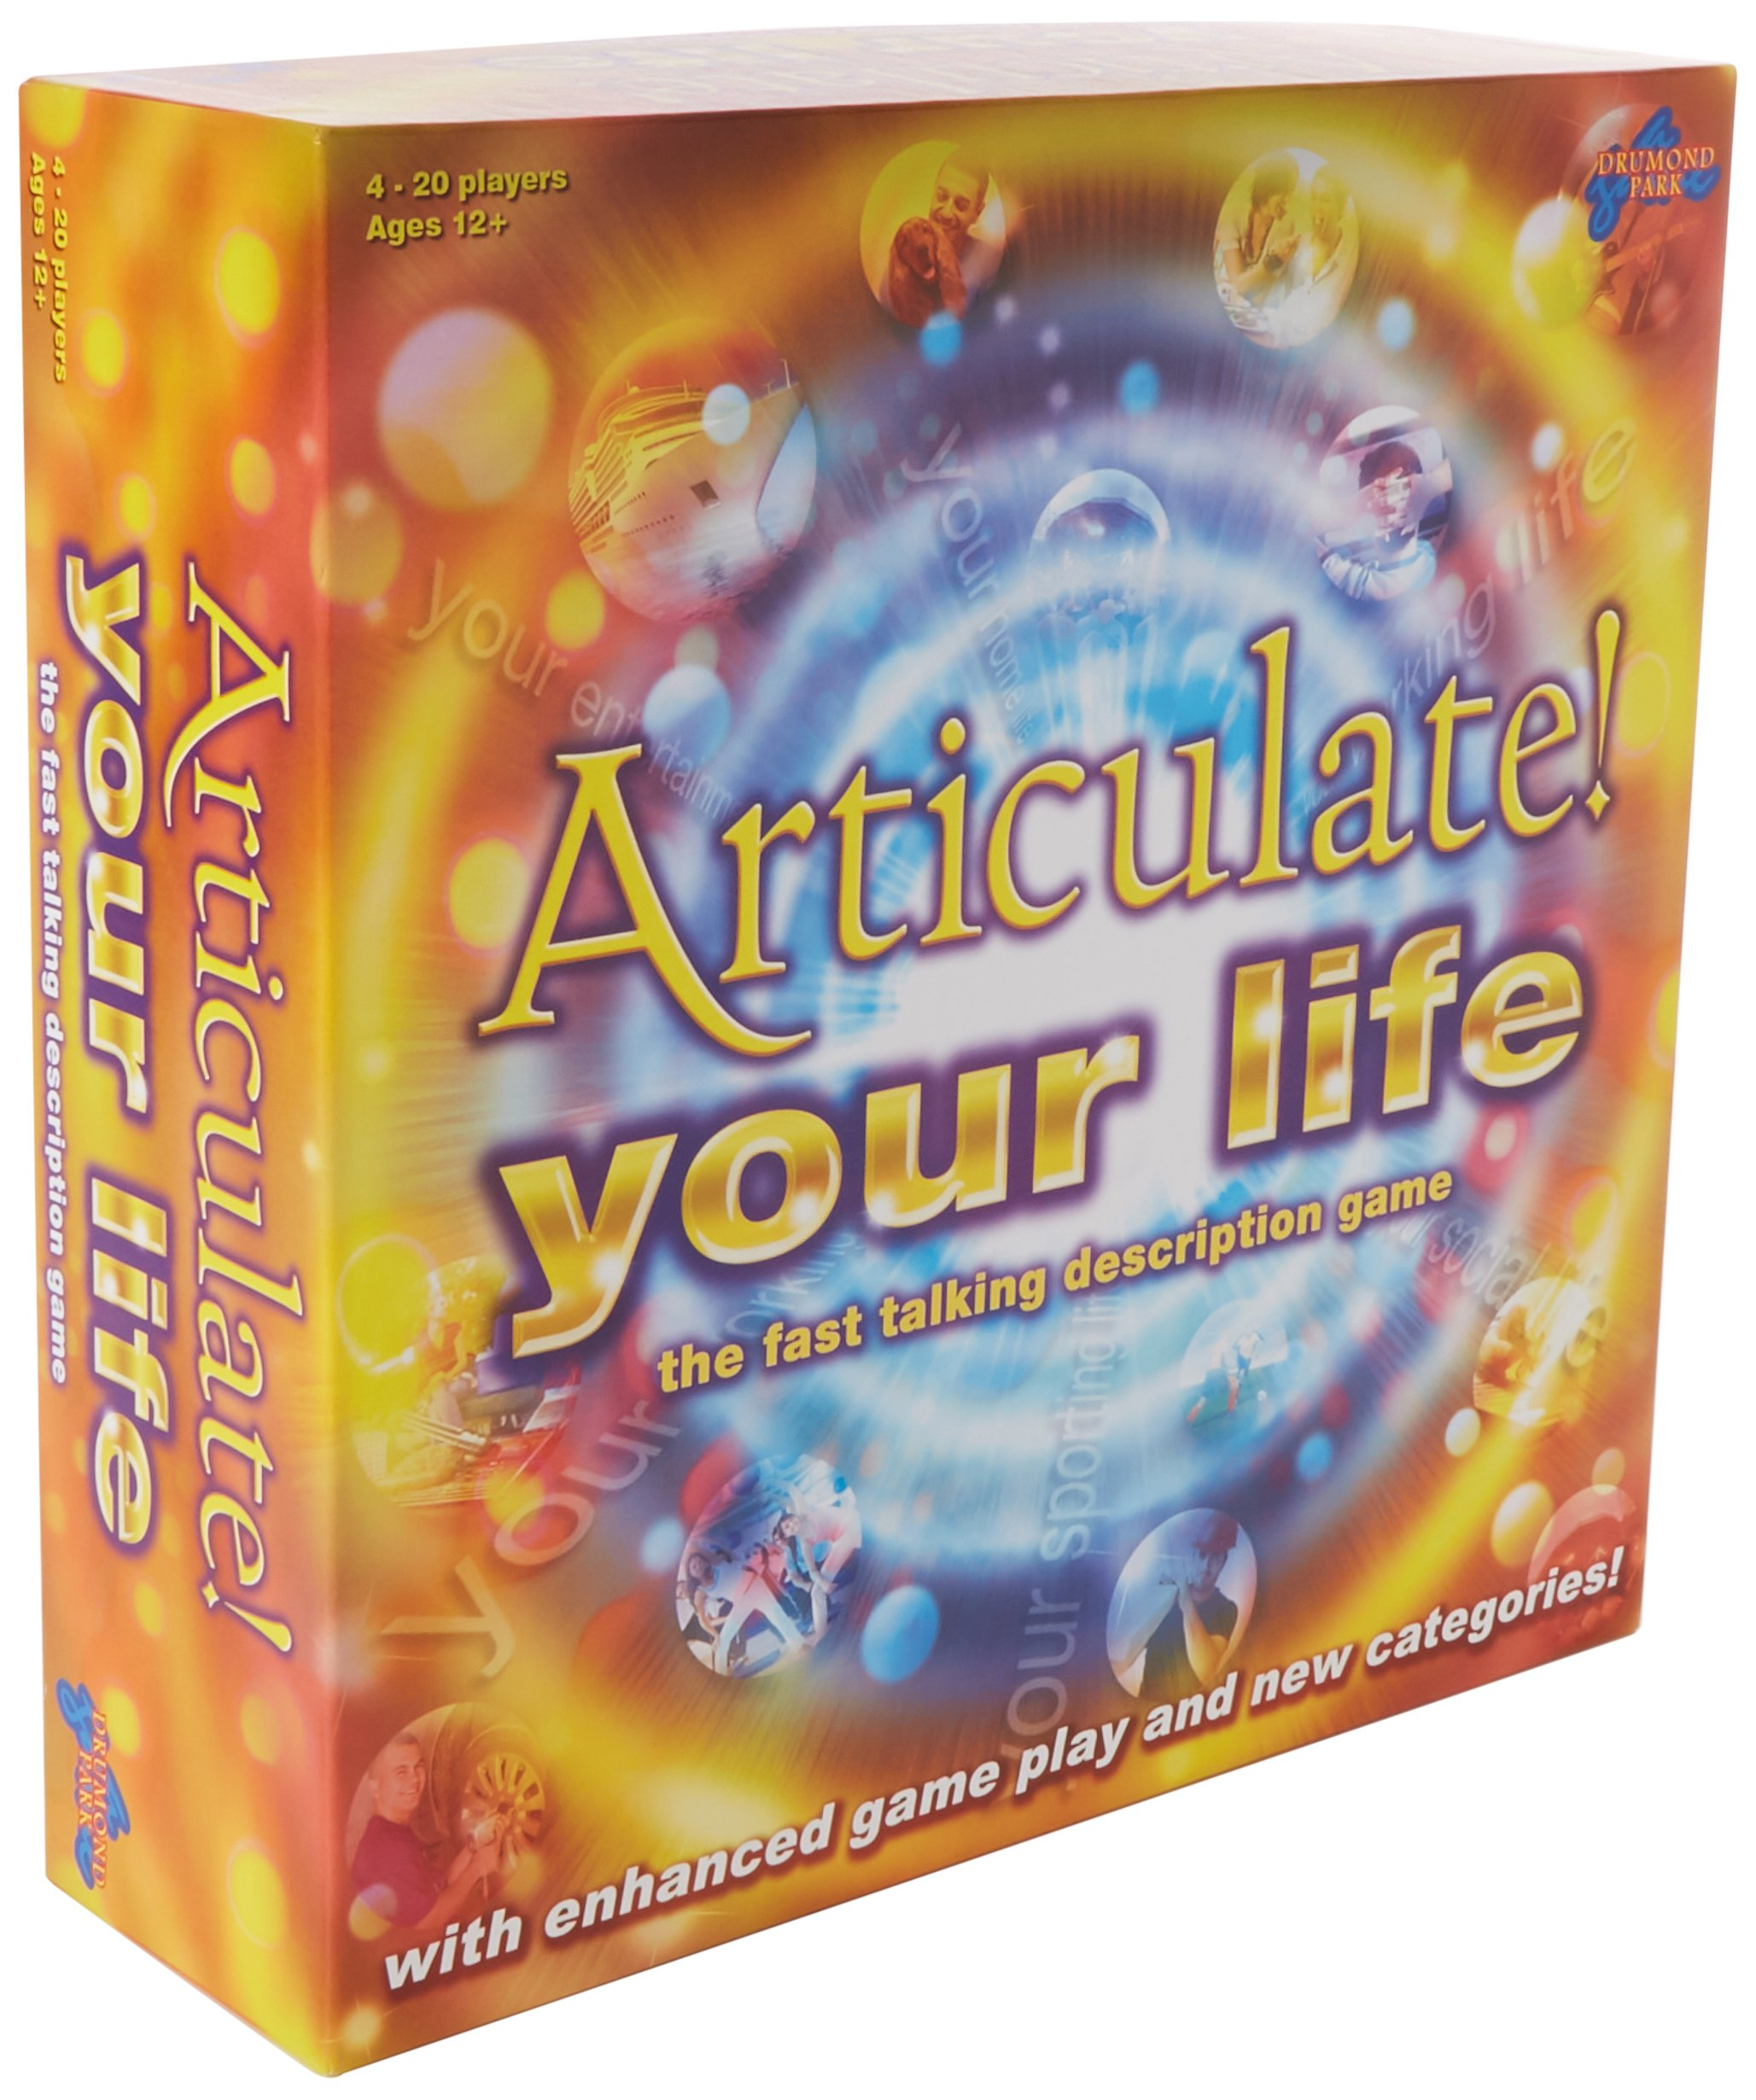 Drumond Park Articulate Your Life Family Board Game - The Fast Talking Description Board Game | Family Games For Adults And Kids Suitable From 12+ Years